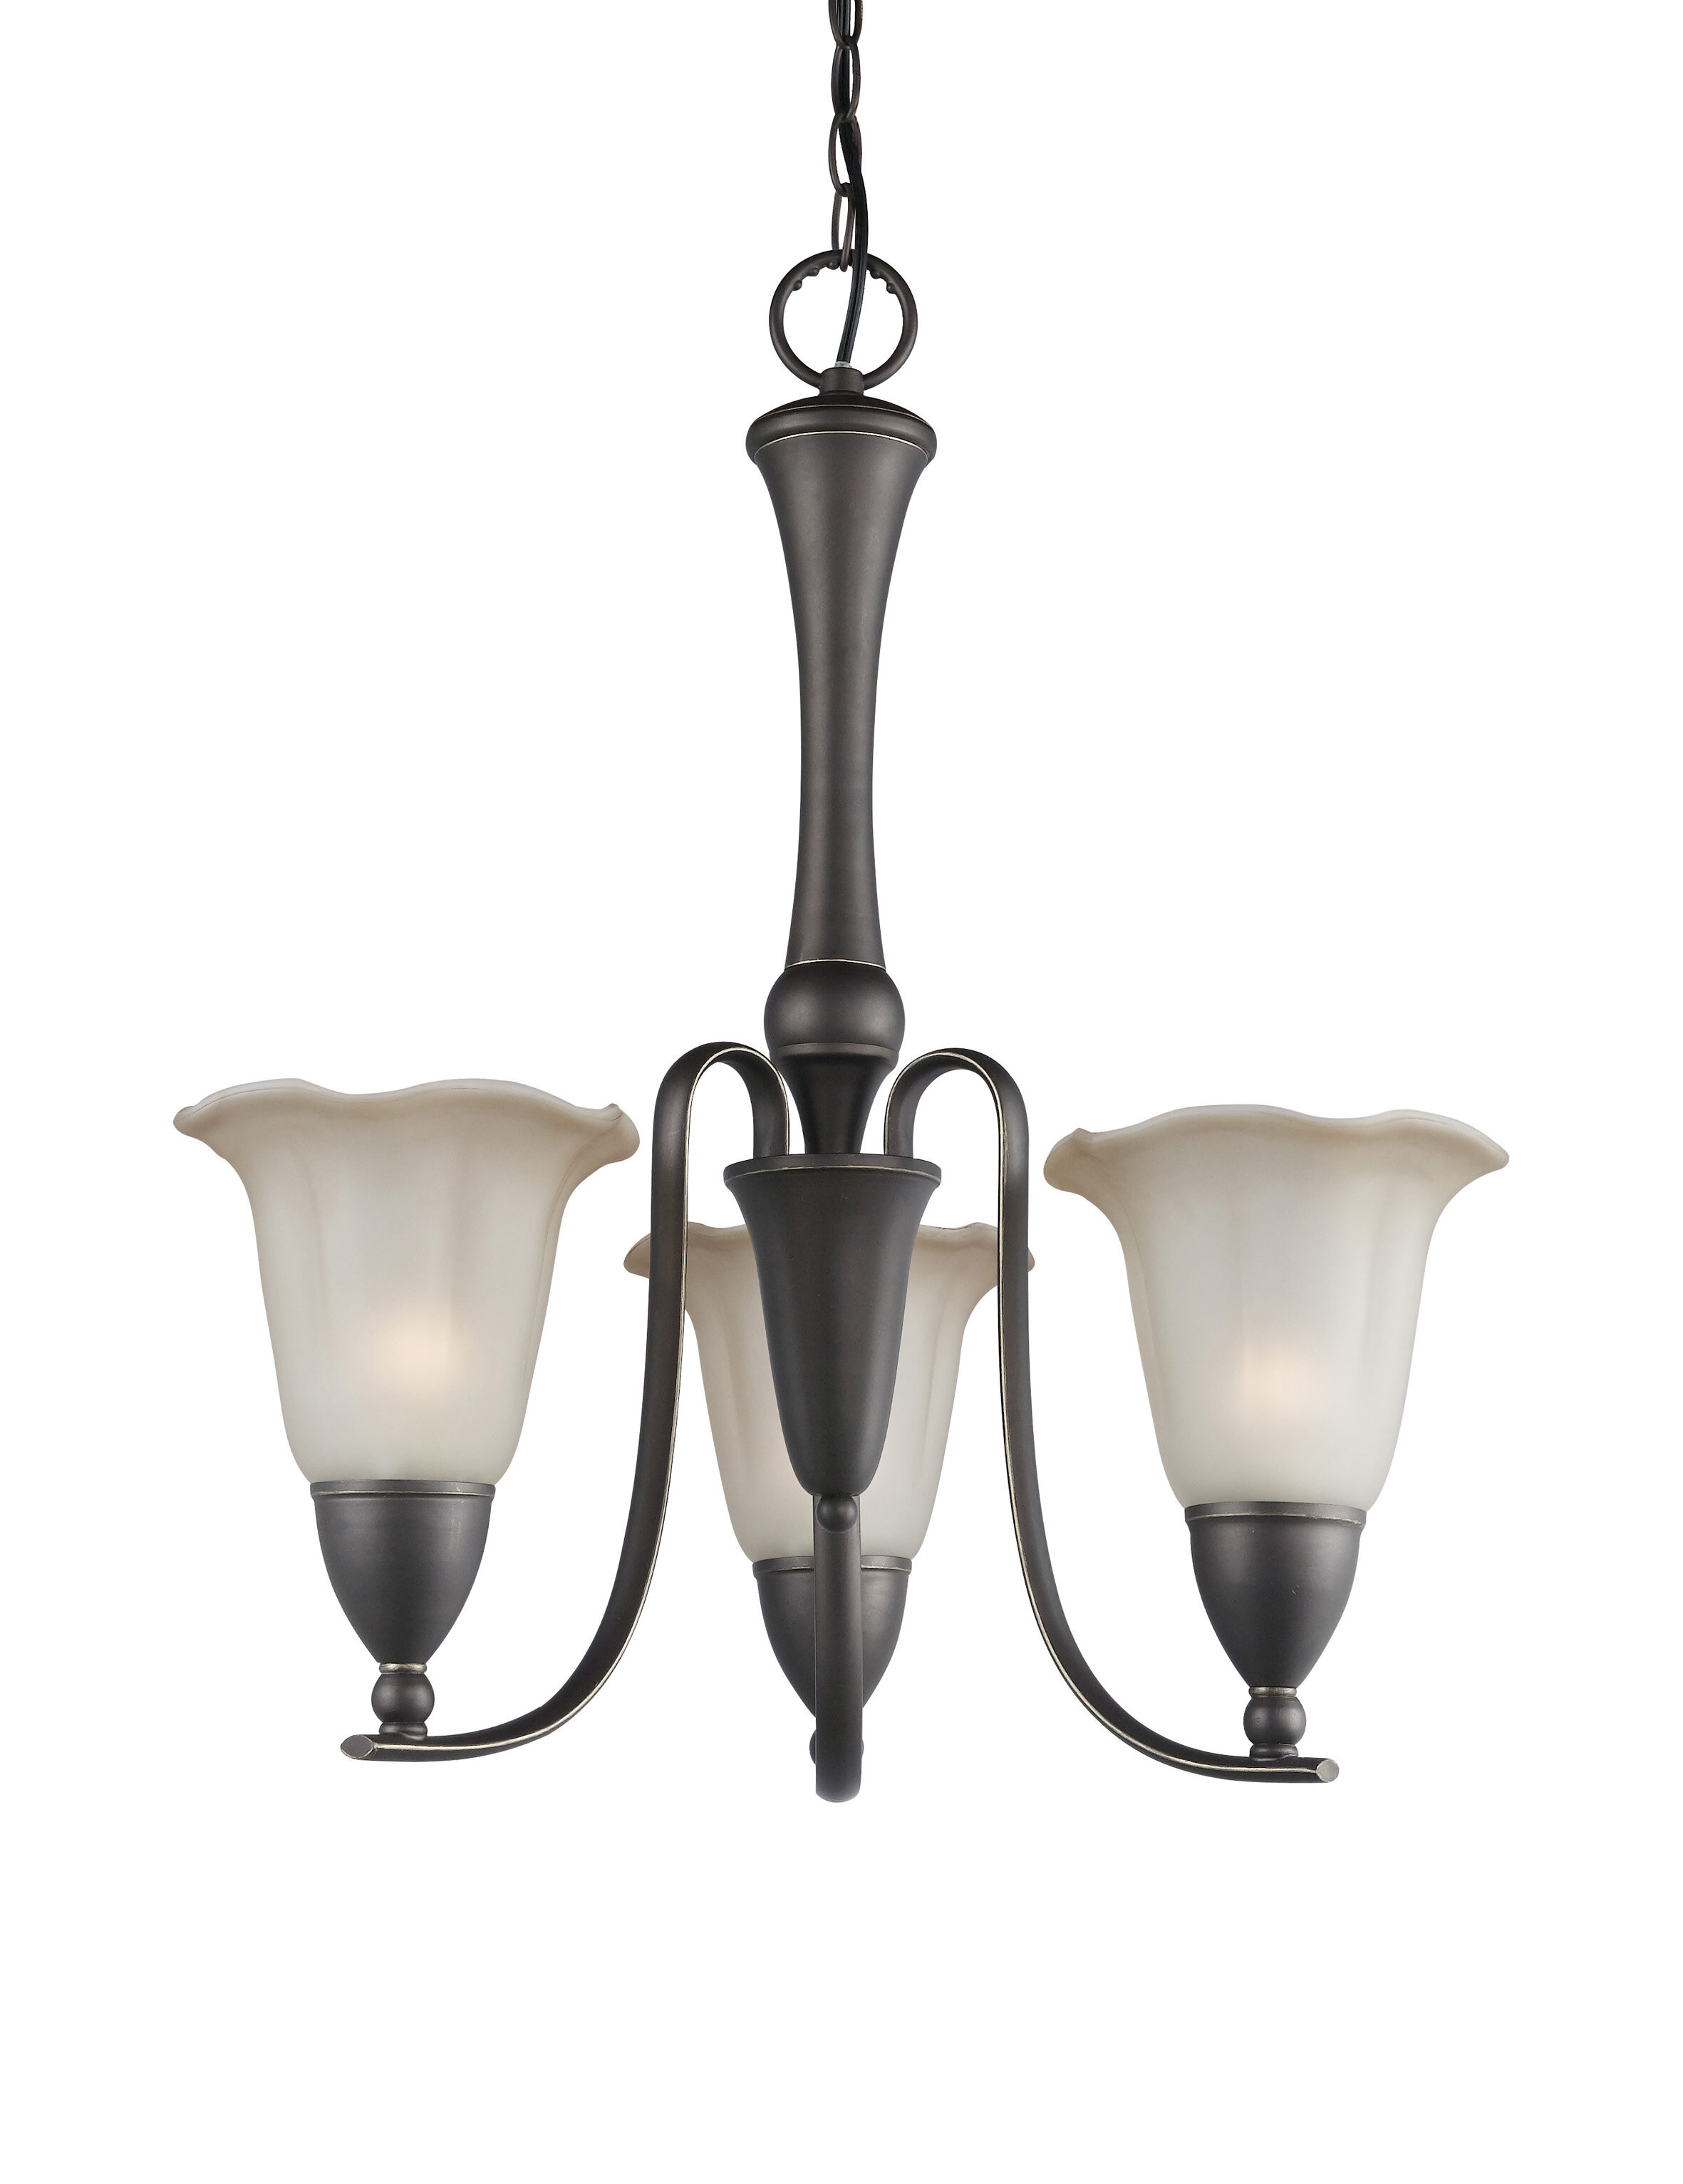 KINGSTON 3 LIGHT SHADED CLASSIC TRADITIONAL CHANDELIER